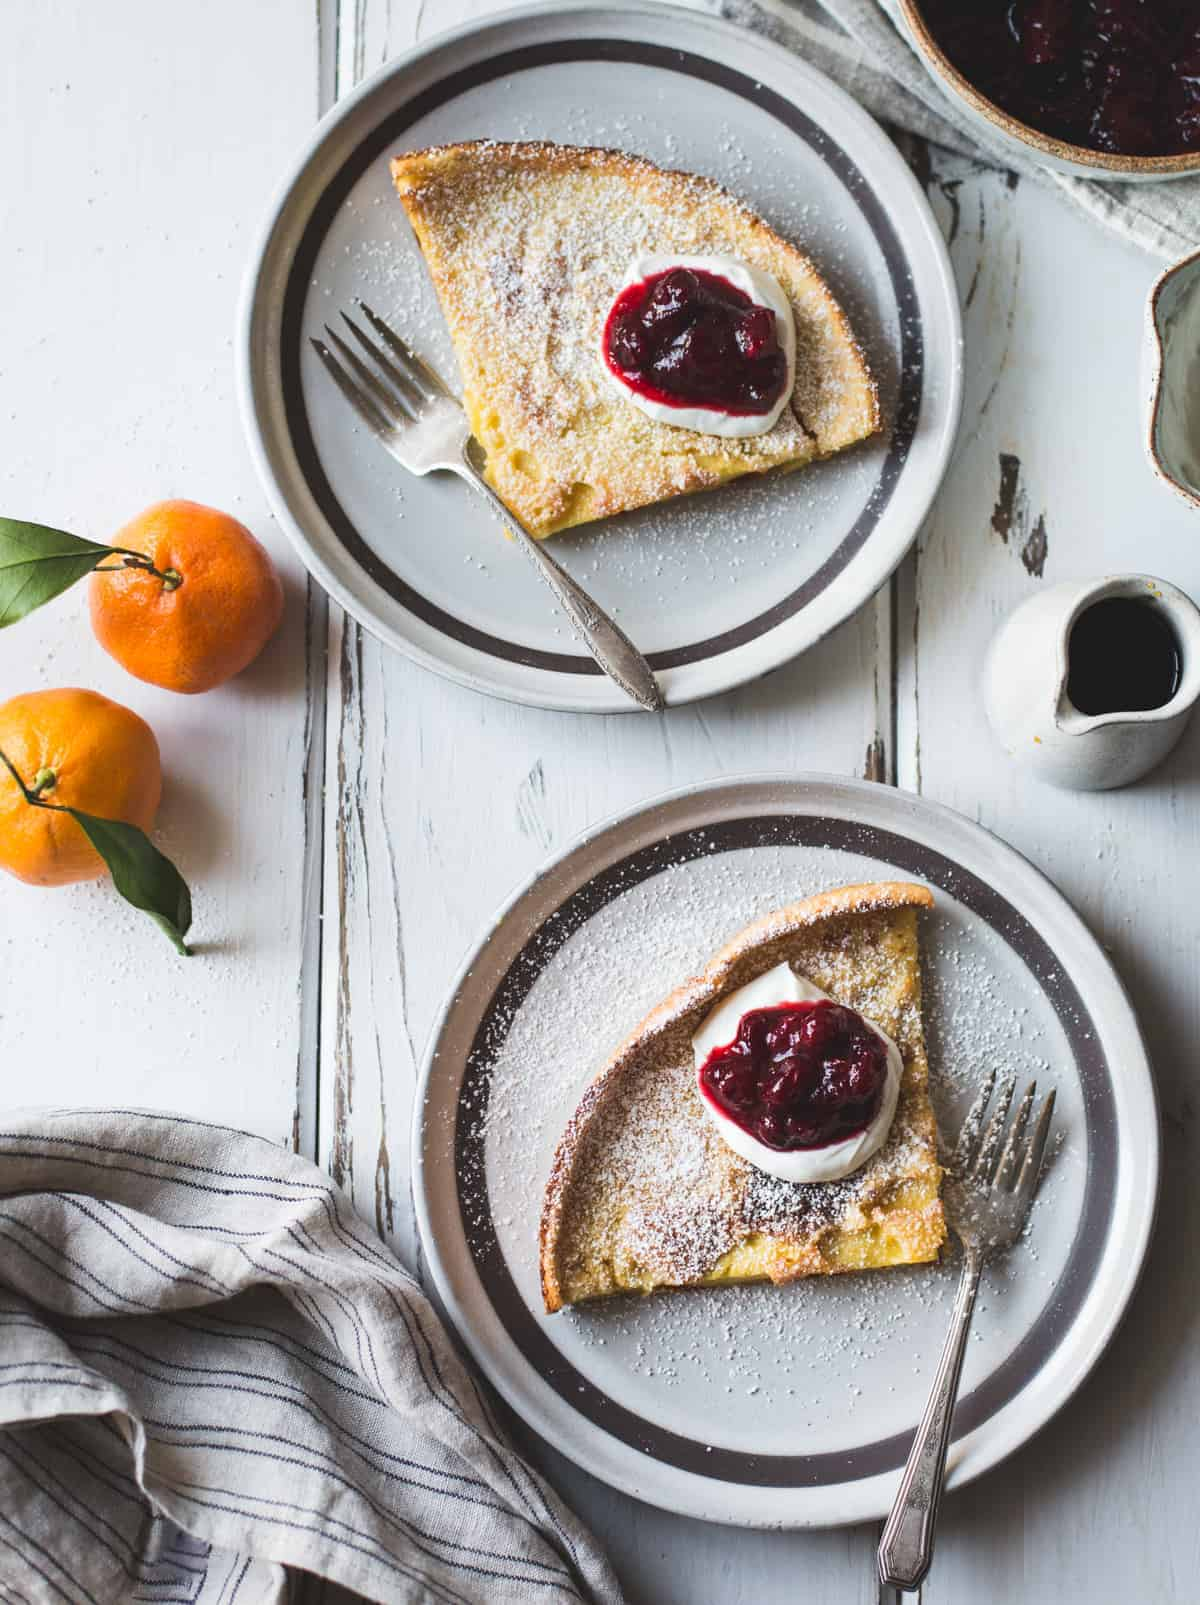 Gluten-Free Sorghum Buttermilk Dutch Baby topped with Maple Cranberry Sauce